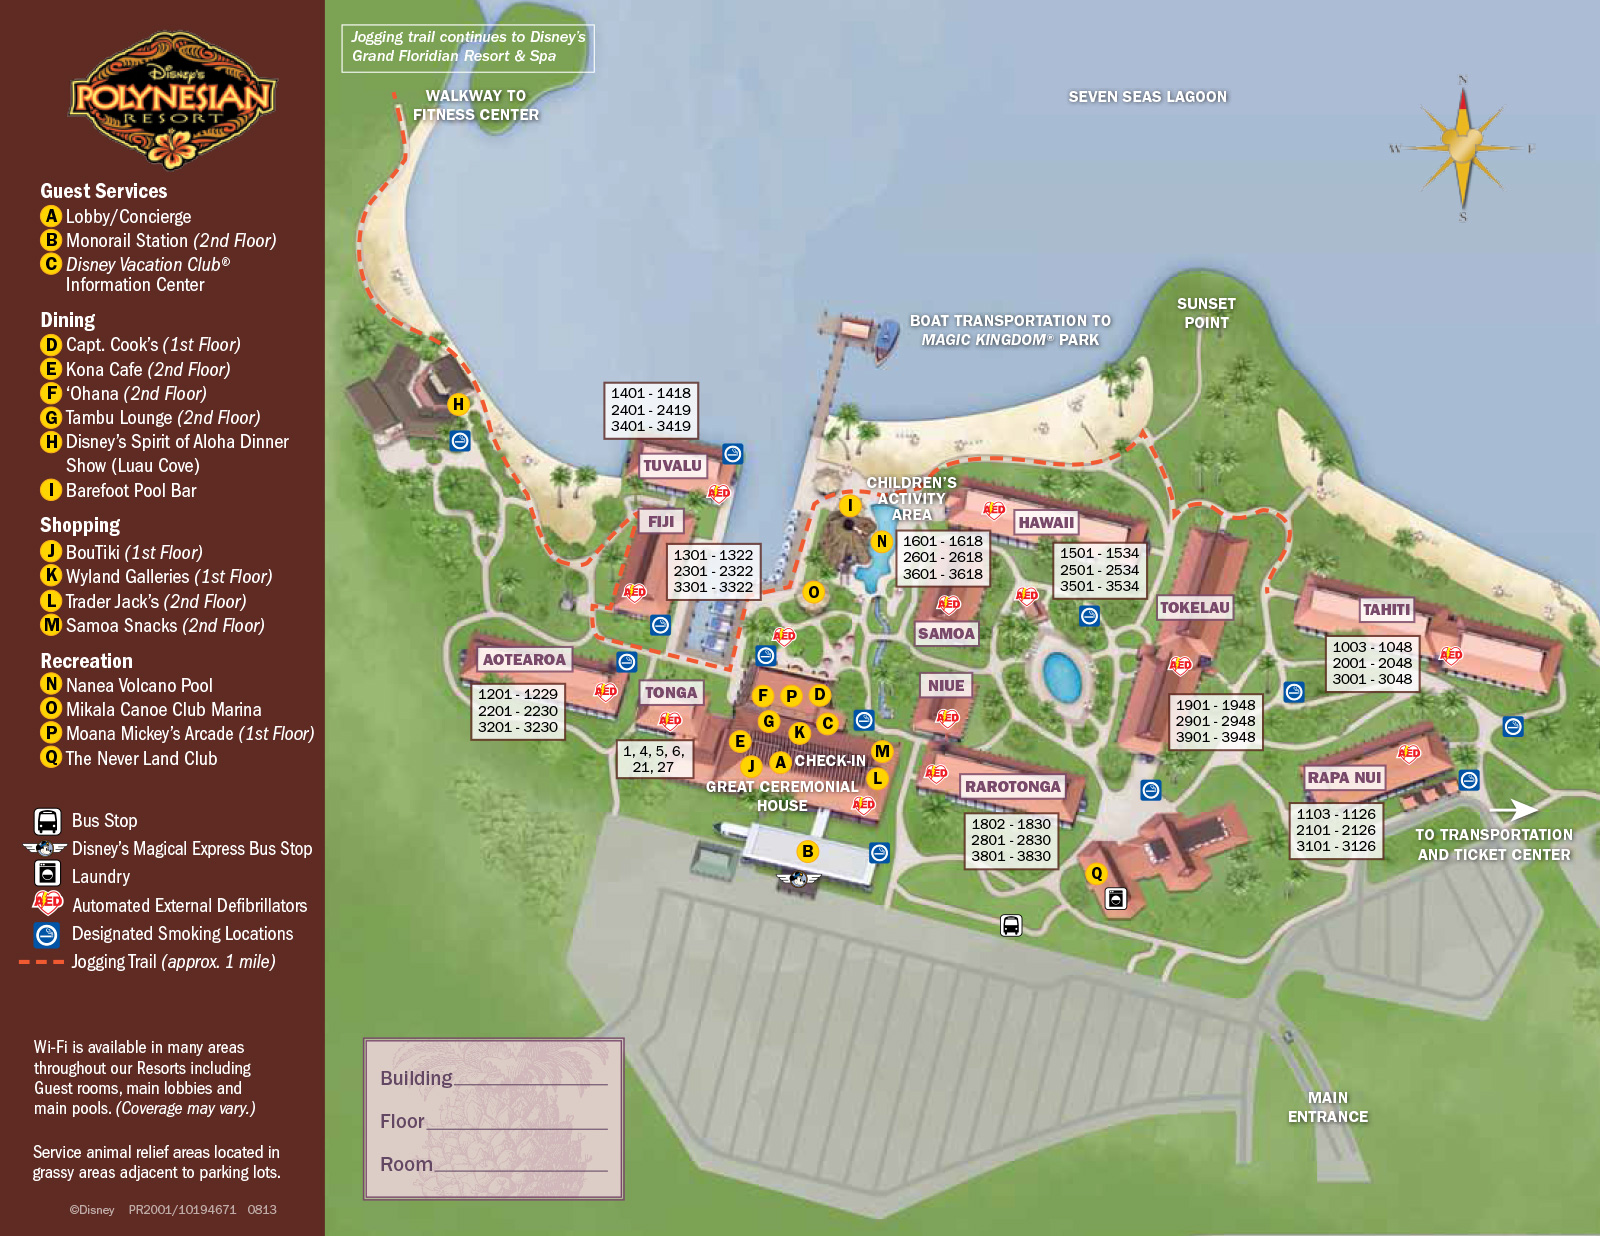 2013 Polynesian Resort guide map